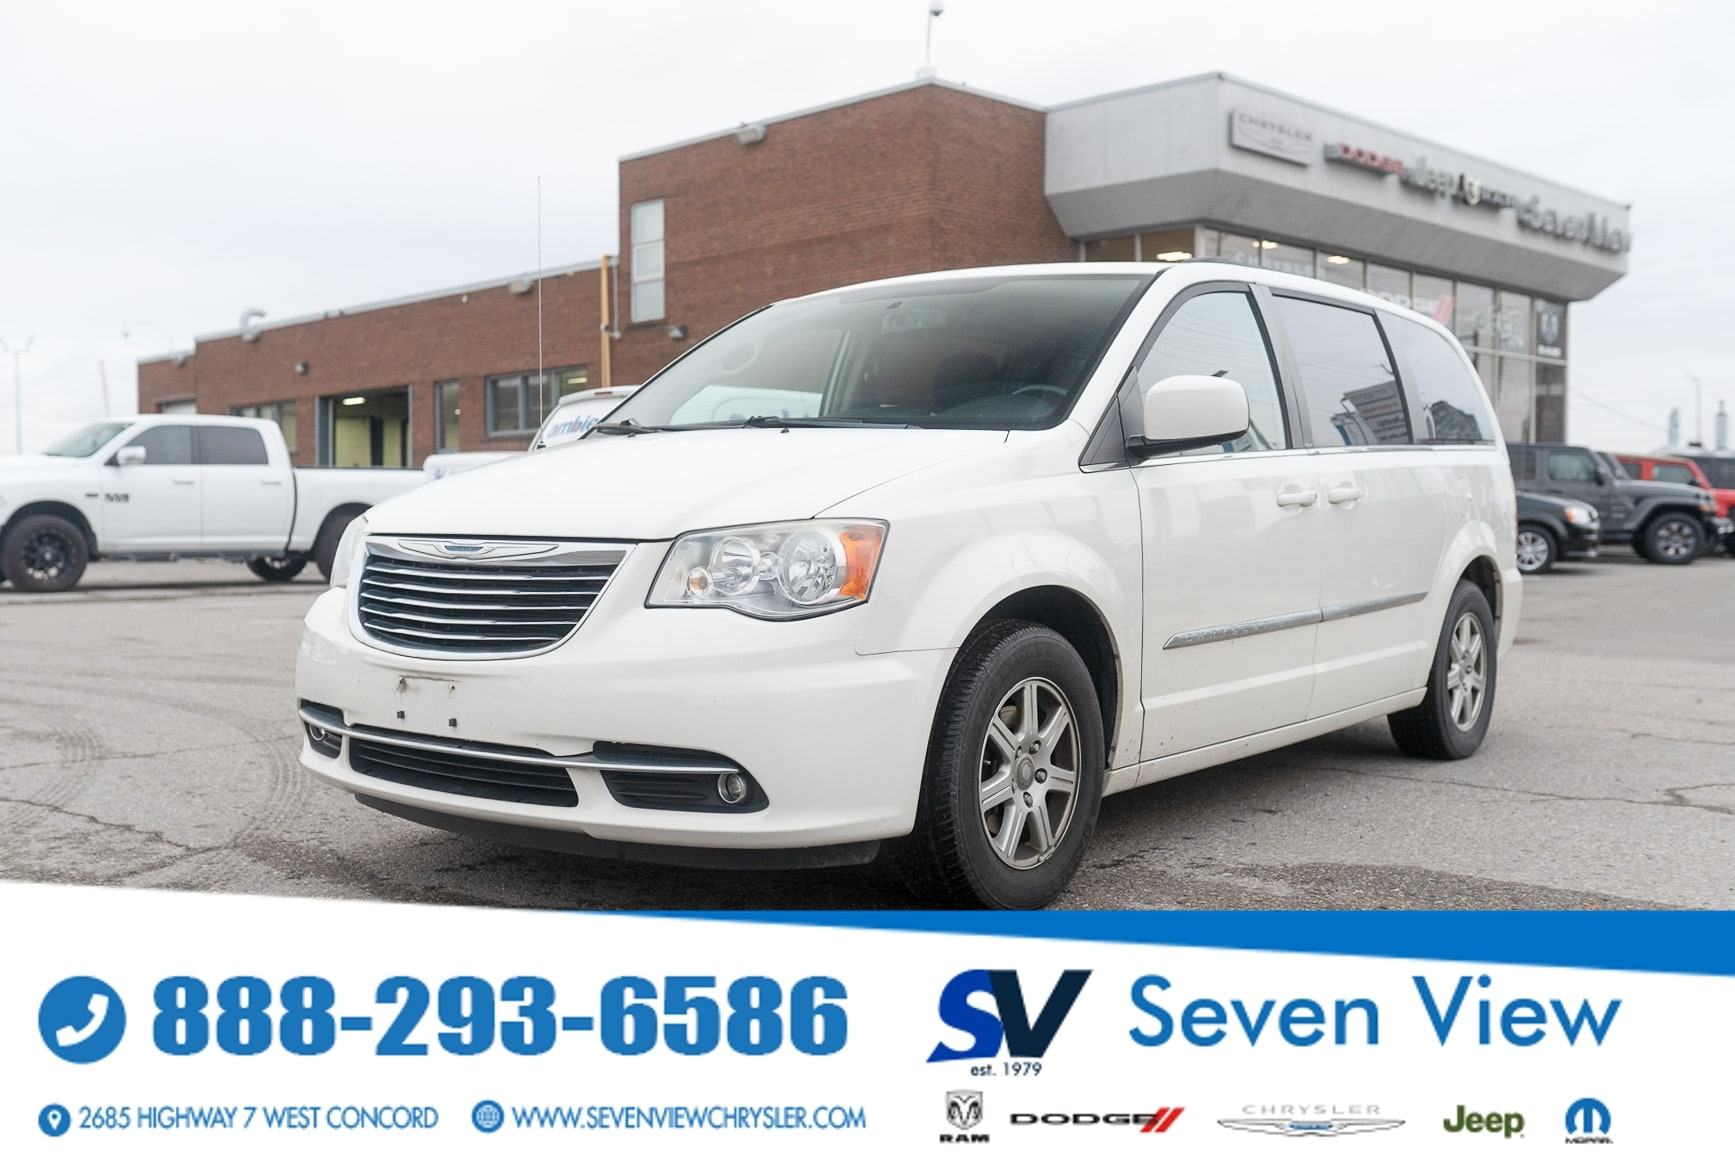 used 2012 Chrysler Town & Country car, priced at $12,277